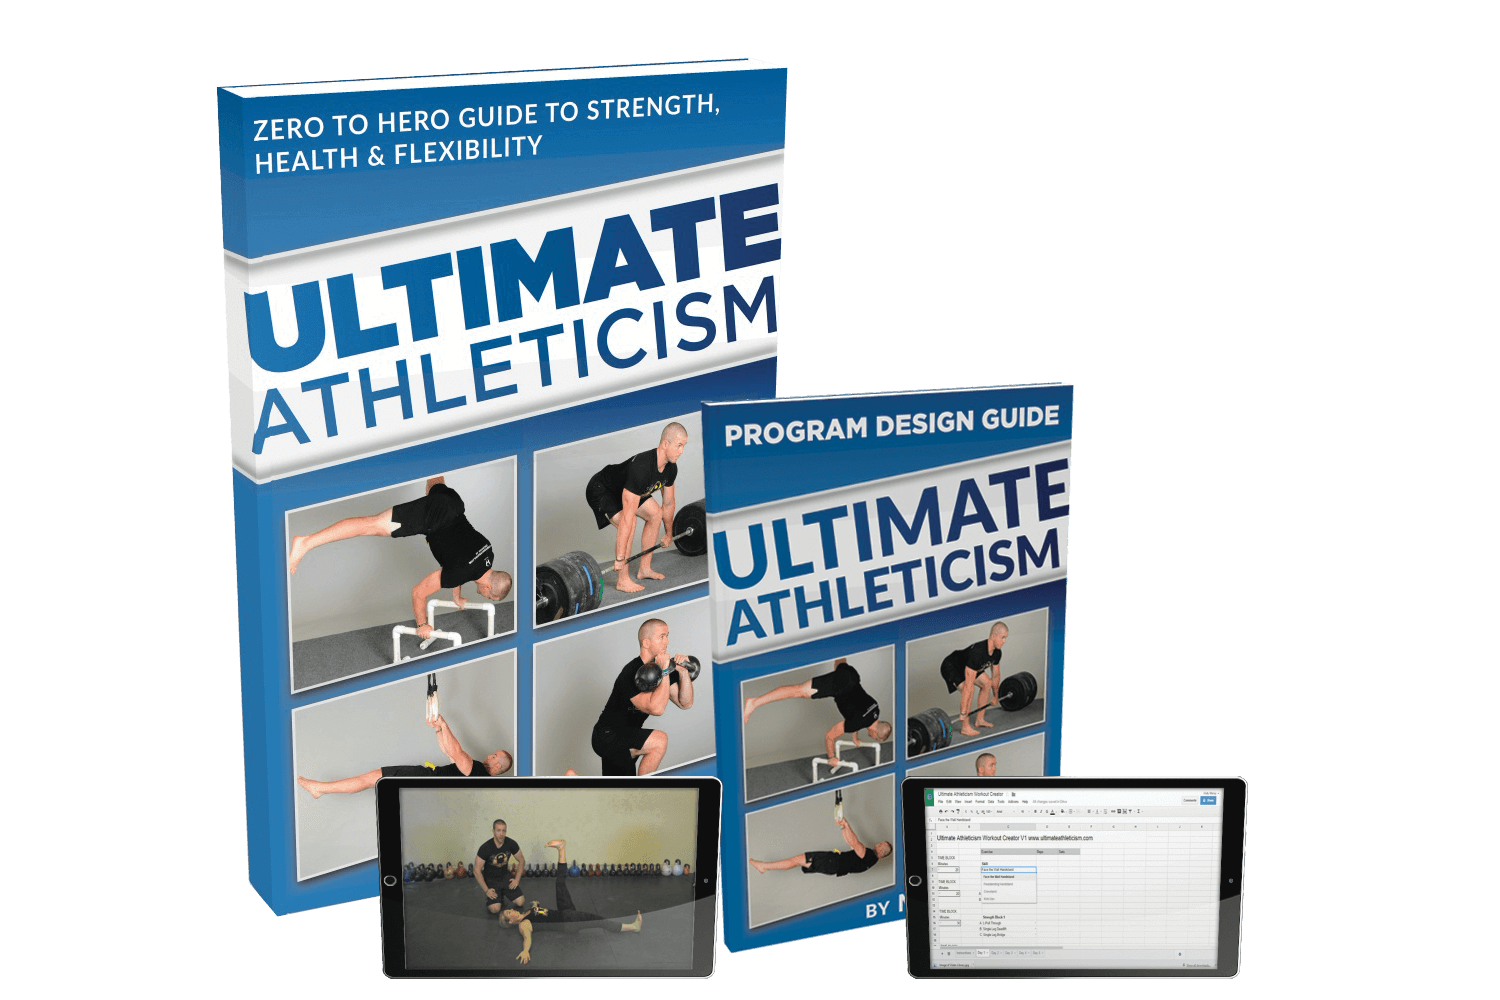 Get the Ultimate Athleticism to be a pro